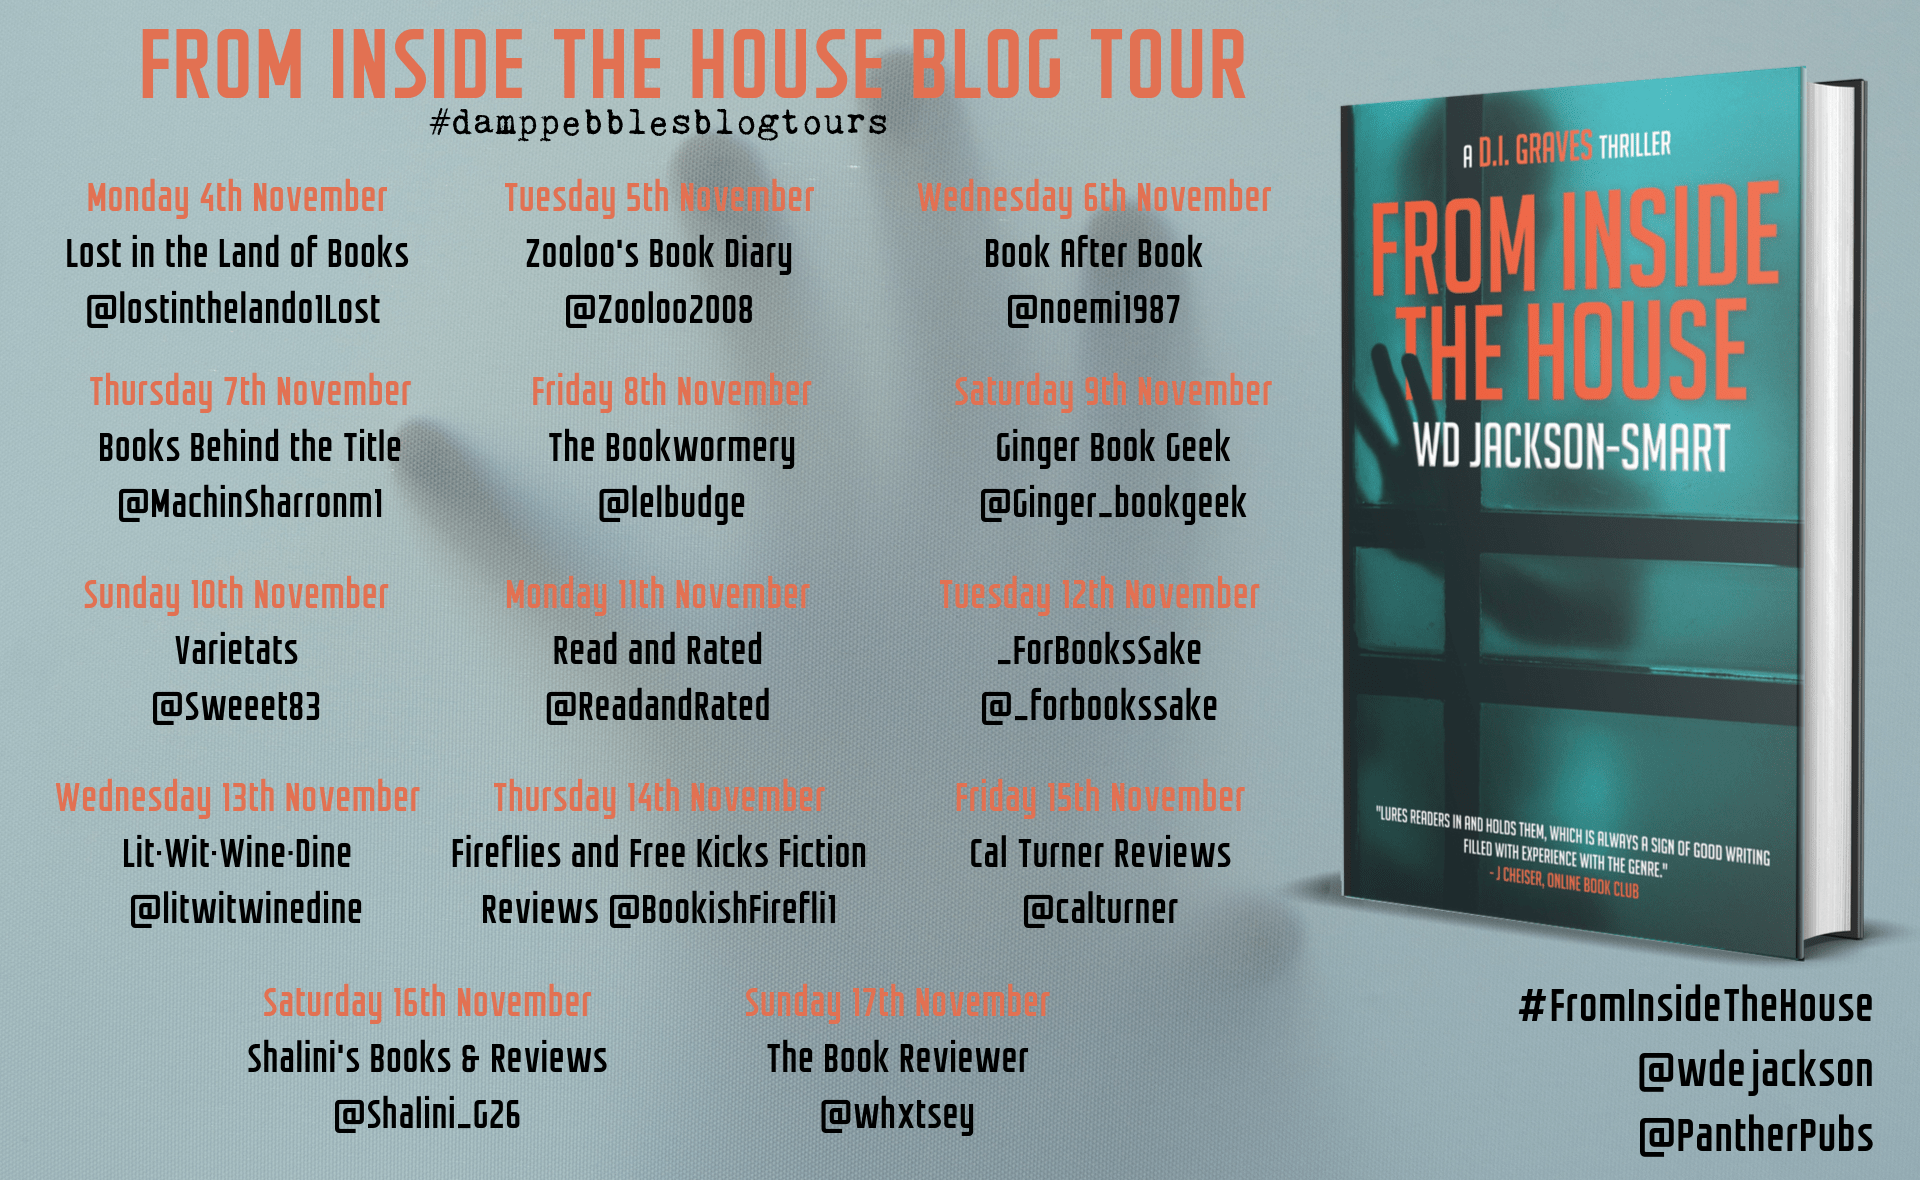 #BookReview of From Inside The House by W.D. Jackson-Smart @Wdejackson @PantherPubs #FITH #DIGraves @damppebbles @DamppebblesBTs #damppebblesblogtours #FromInsideTheHouse